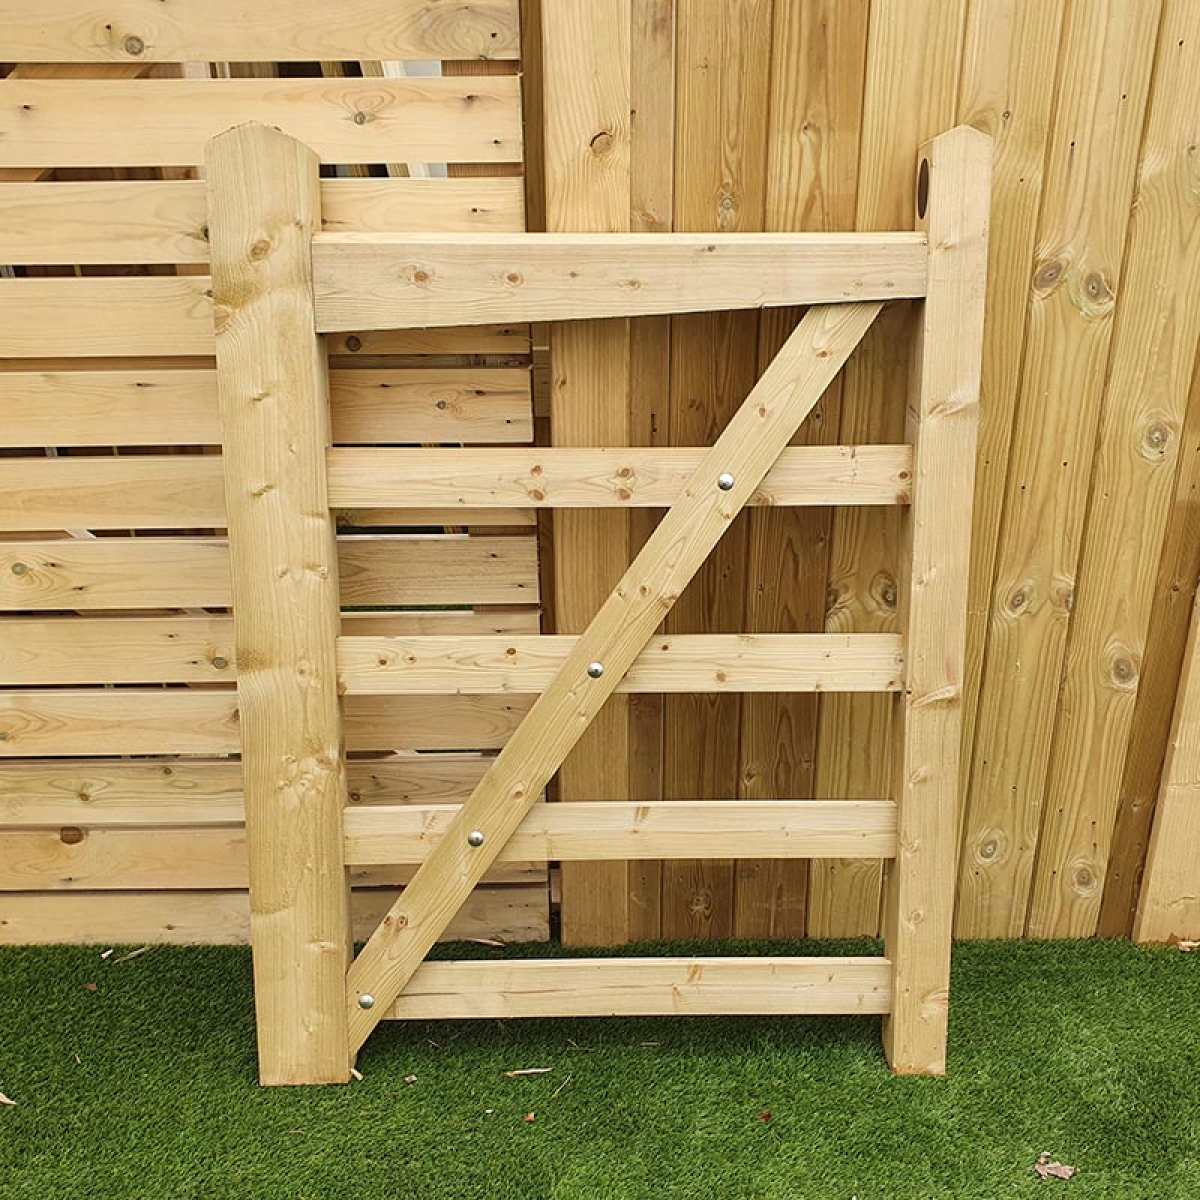 5 bar gates websterstimber 800px by Image by Websters Timber